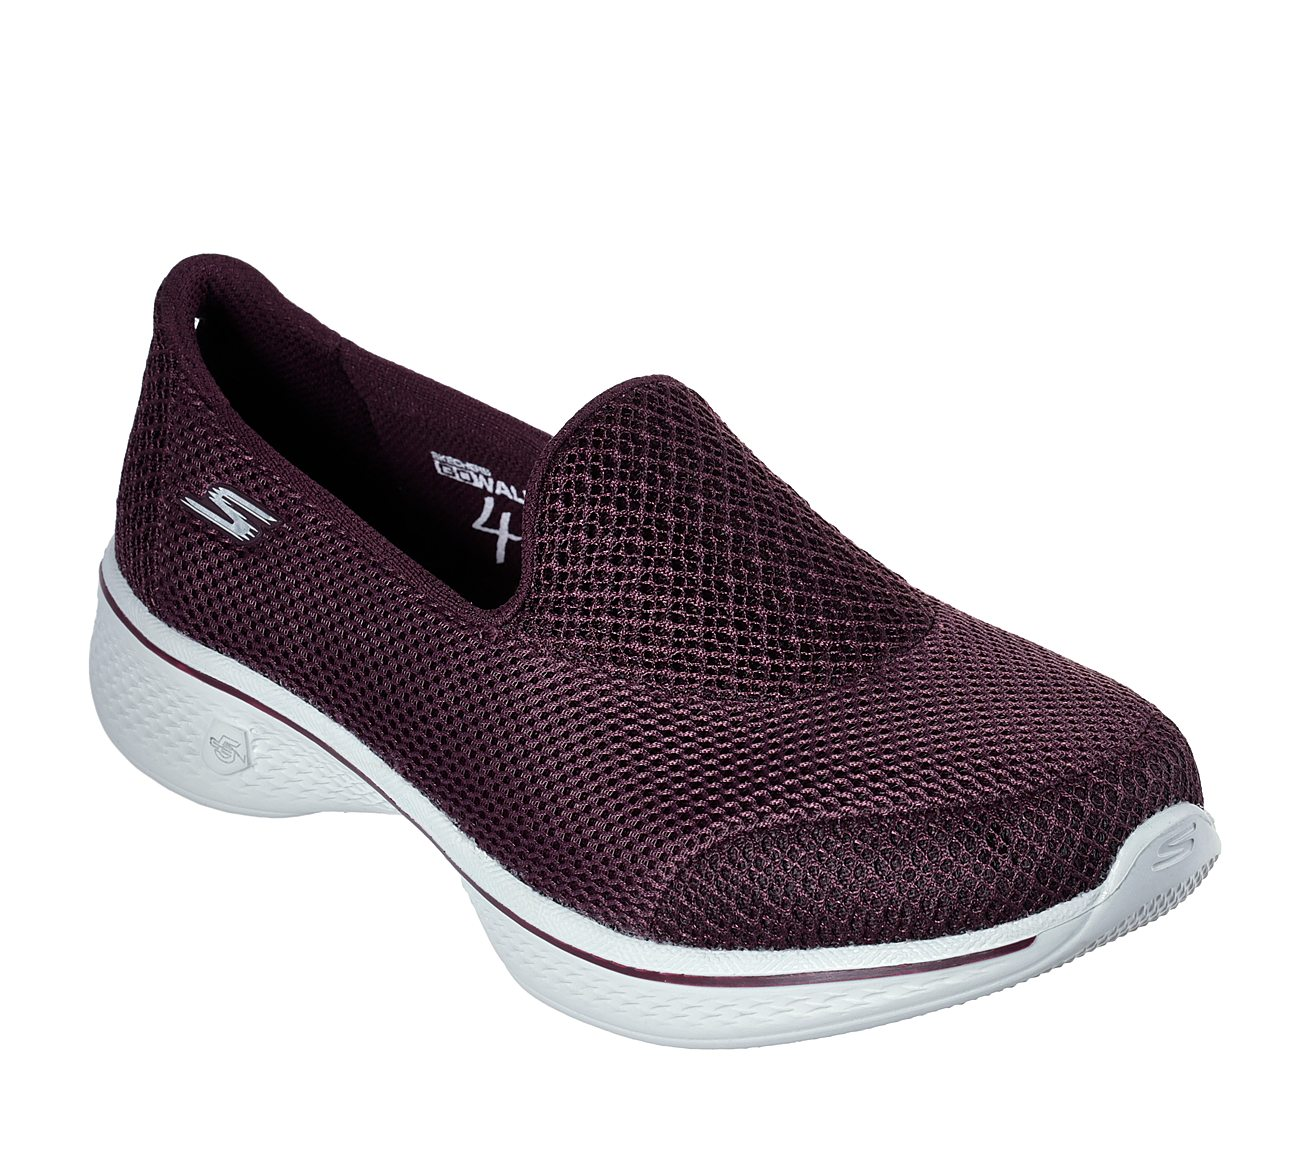 Auckland Sada partícipe  buy > skechers go walk 14170, Up to 77% OFF